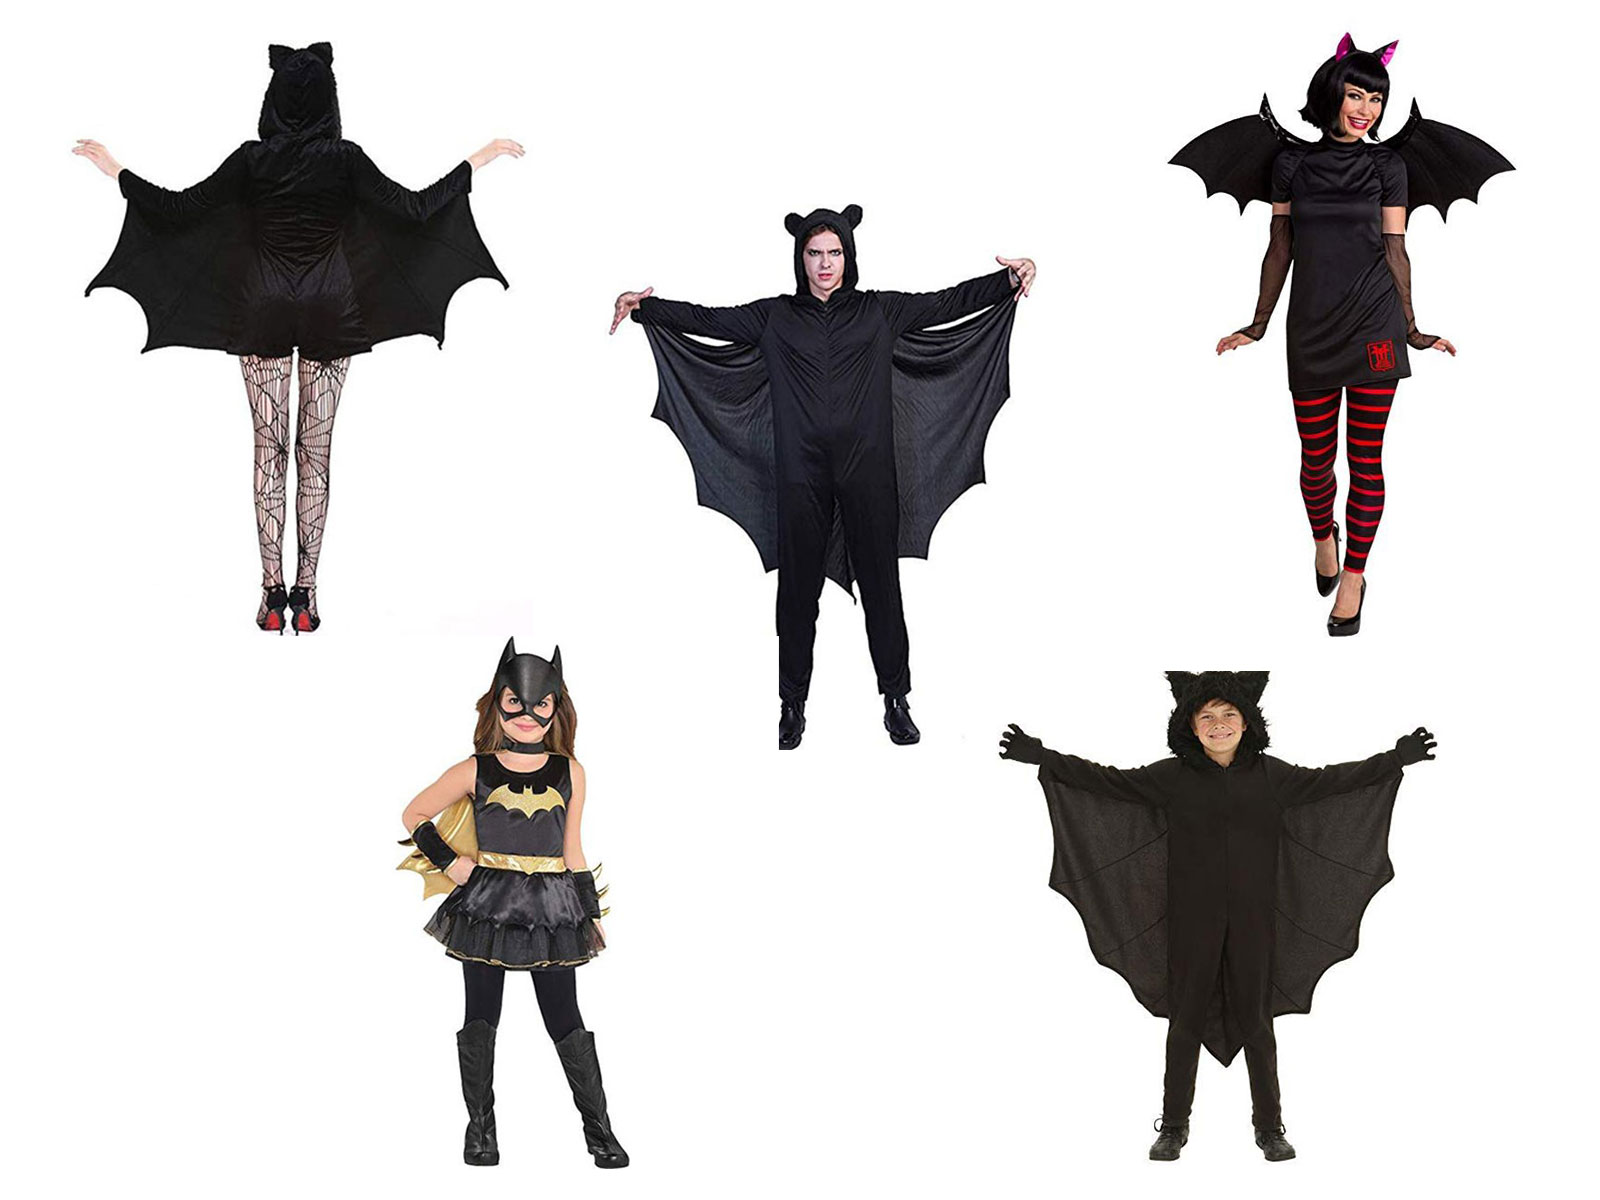 15-Creepy-Halloween-Bat-Costume-Ideas-For-Kids-Men-Women-2019-F